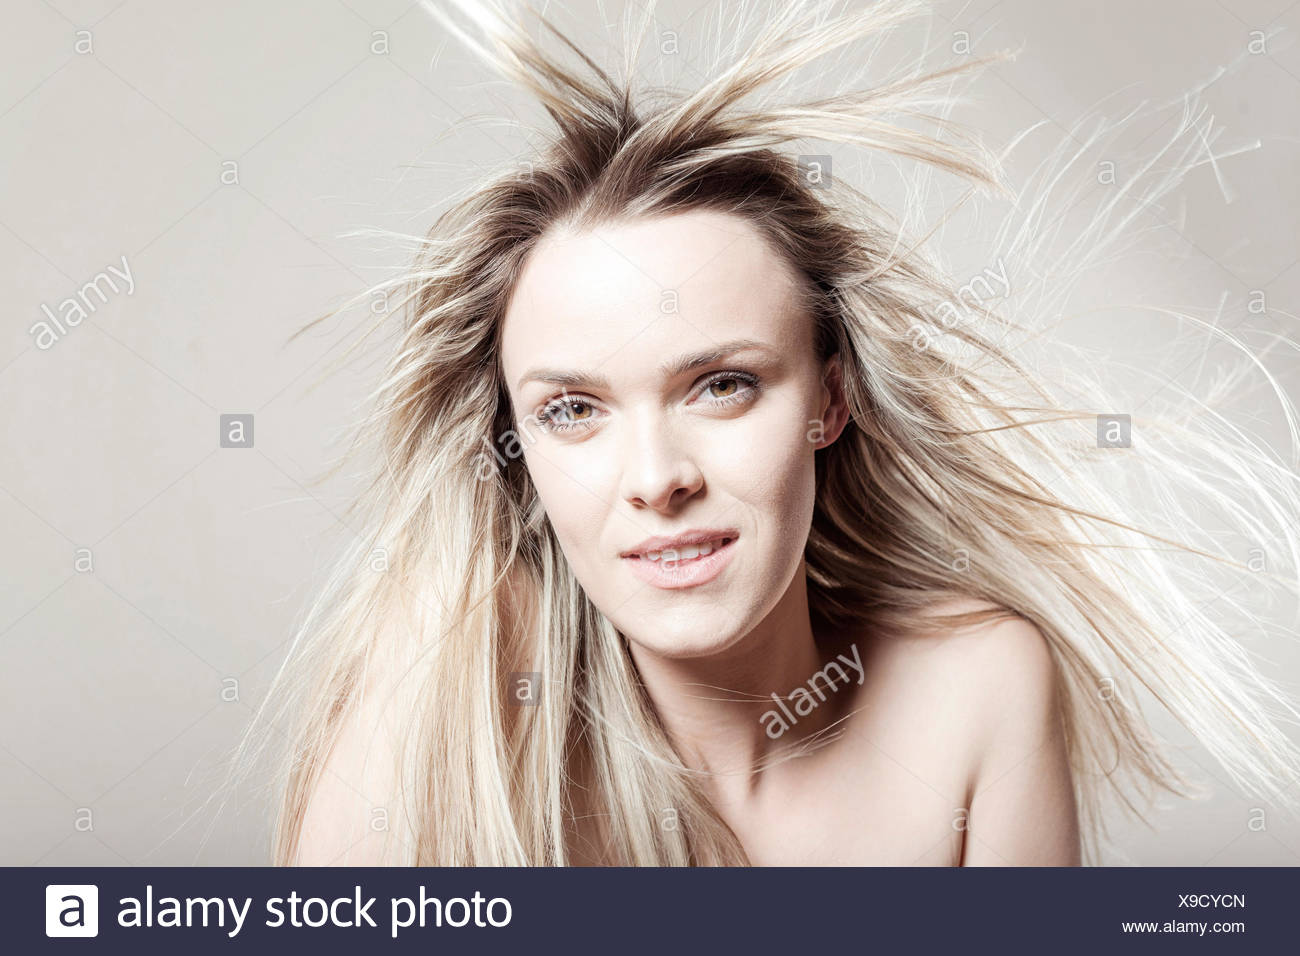 Young woman with tousled hair Stock Photo